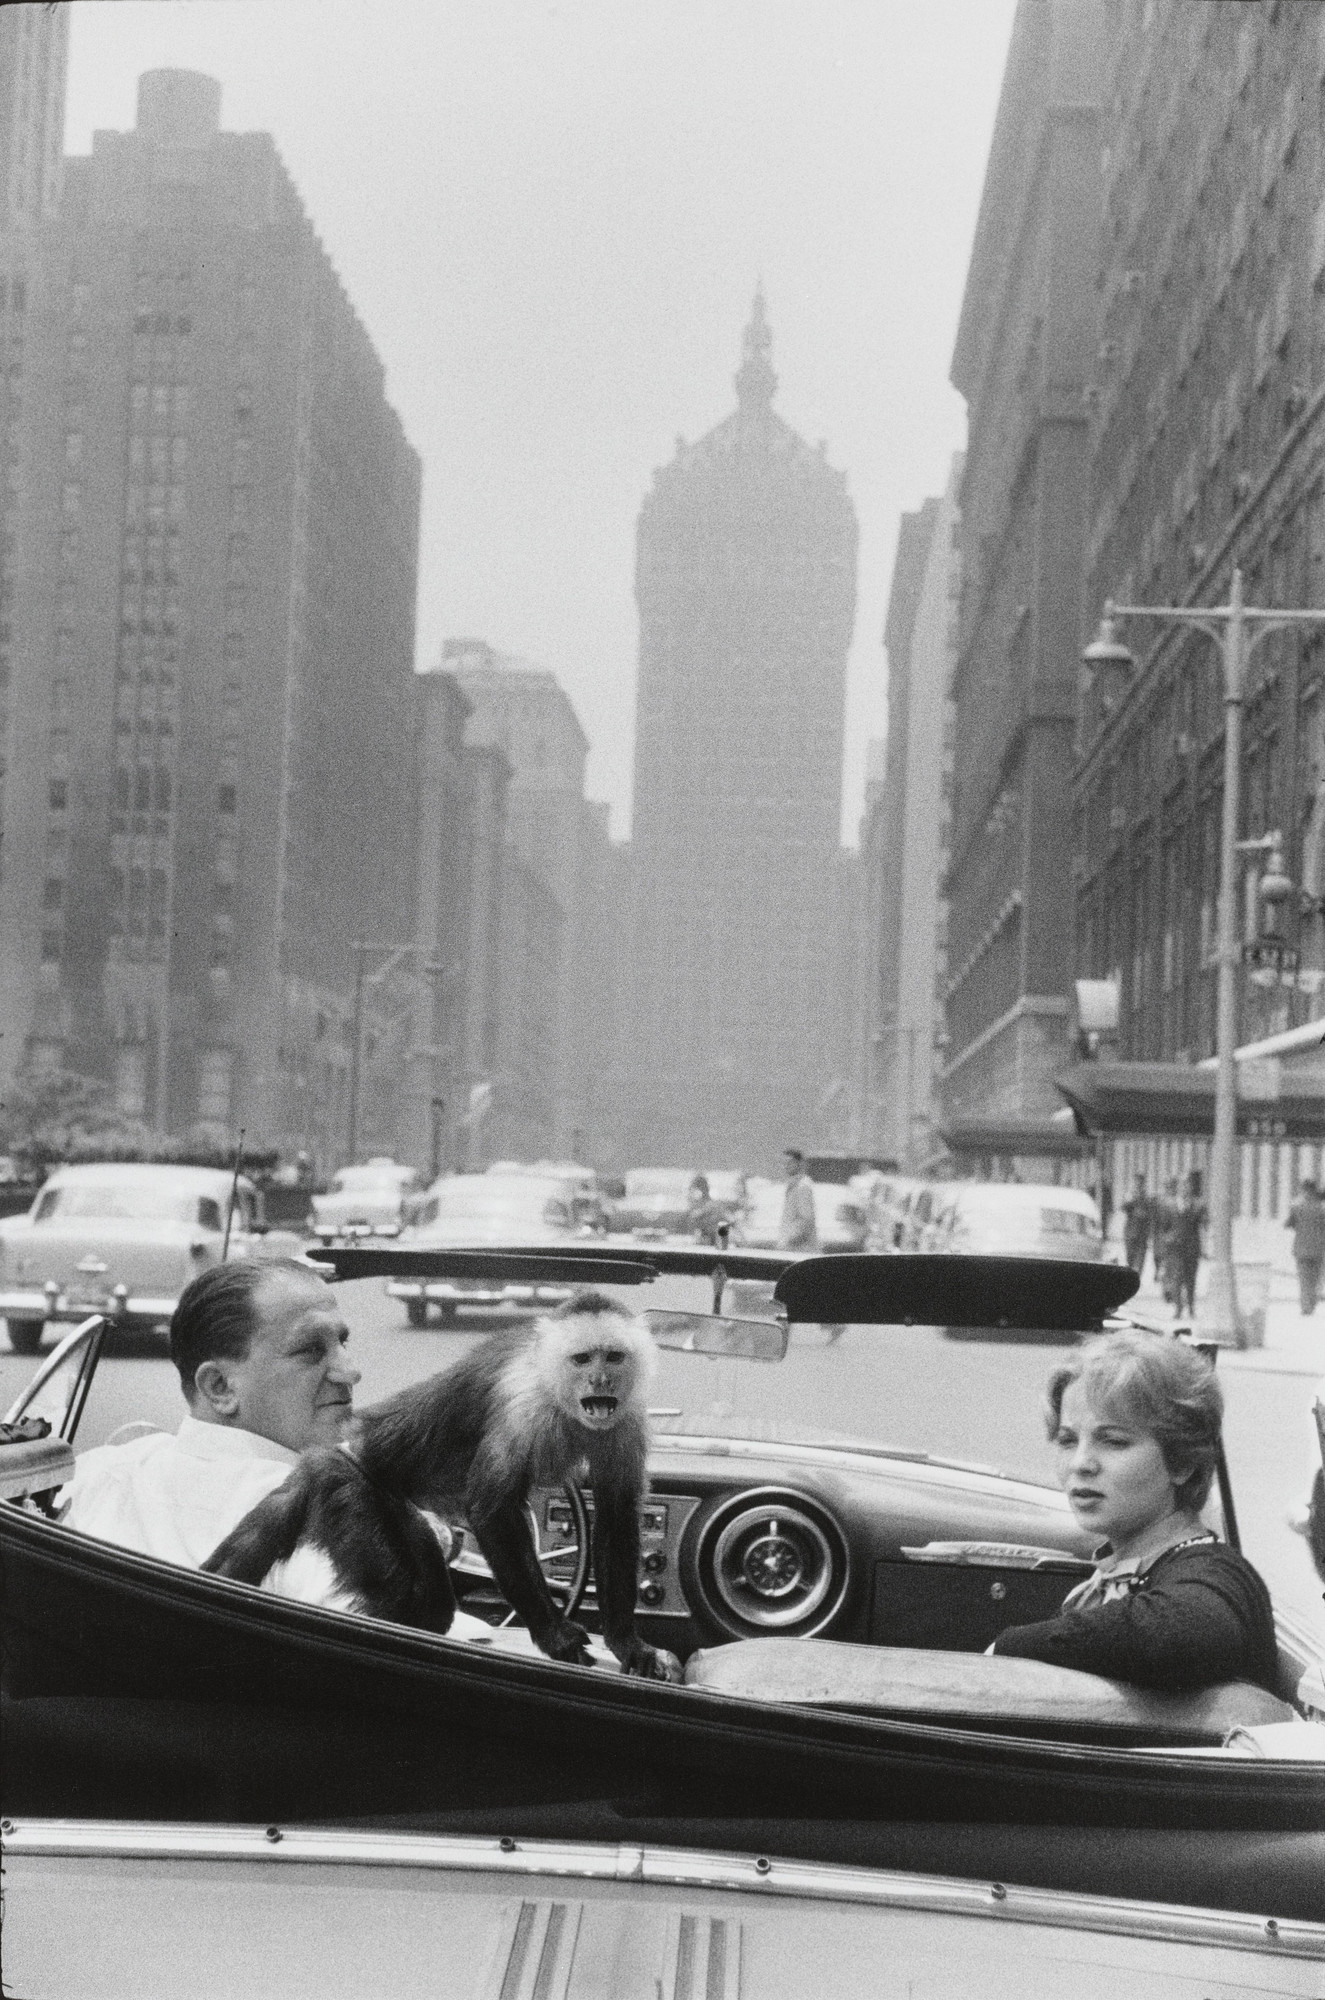 Garry Winogrand. Park Avenue, New York. 1959